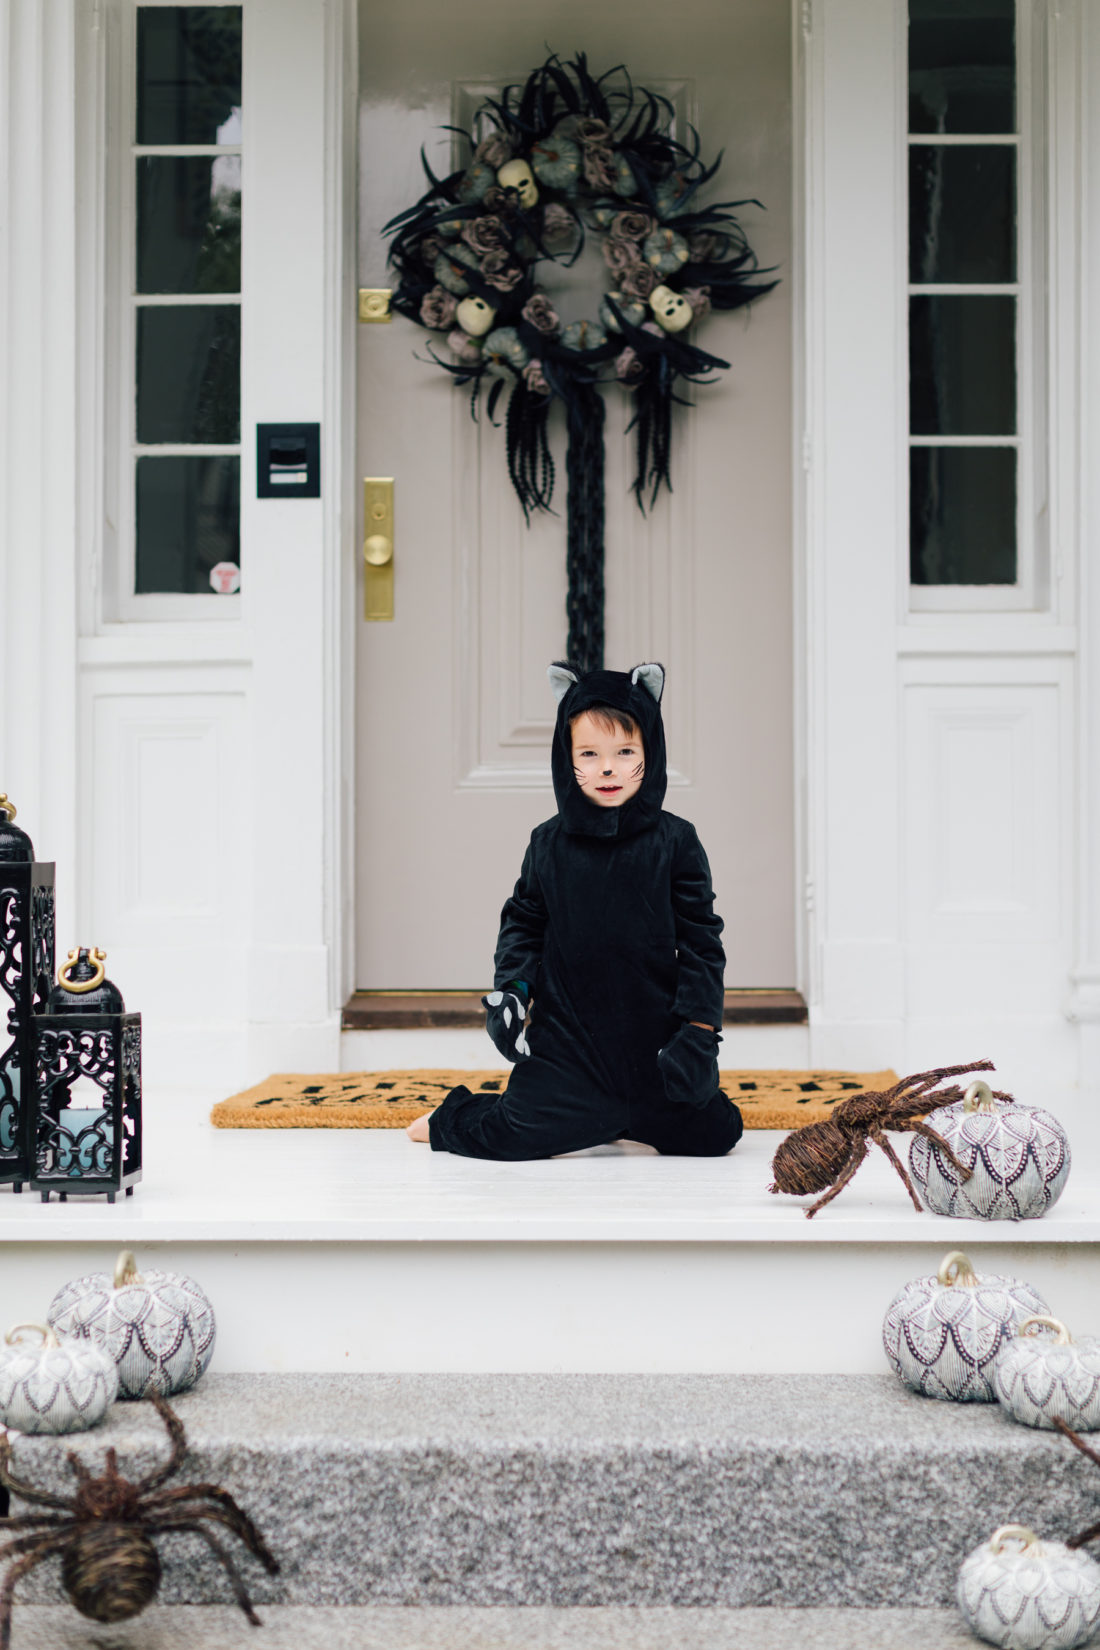 Major Martino wears a cat costume and sits on the front porch of his Connecticut home